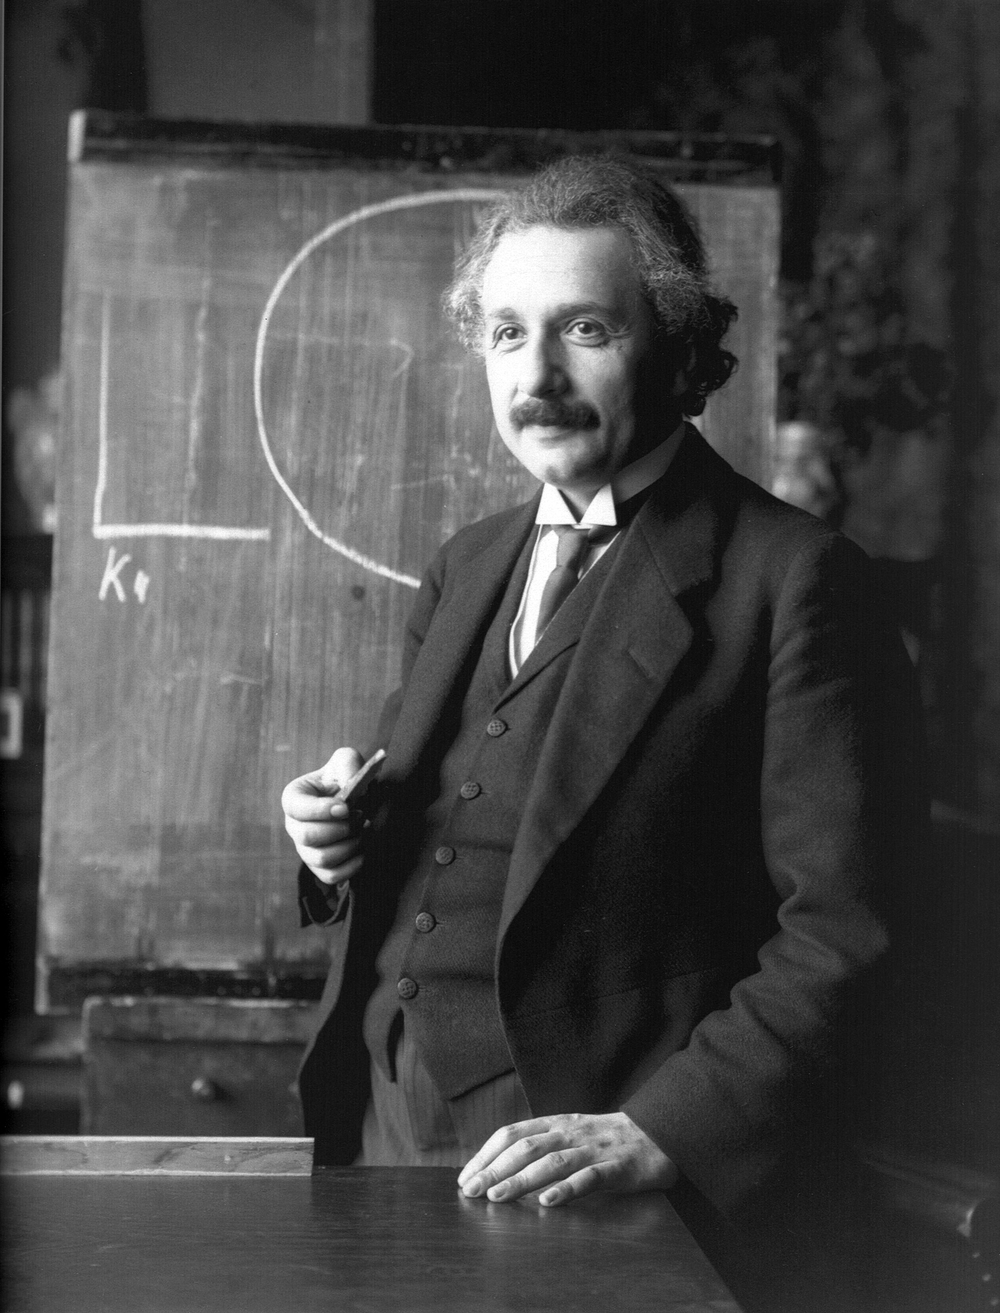 Albert Einstein, the stereotypical scientist Ferdinand Schmutzer/Wikimedia Commons (public domain)